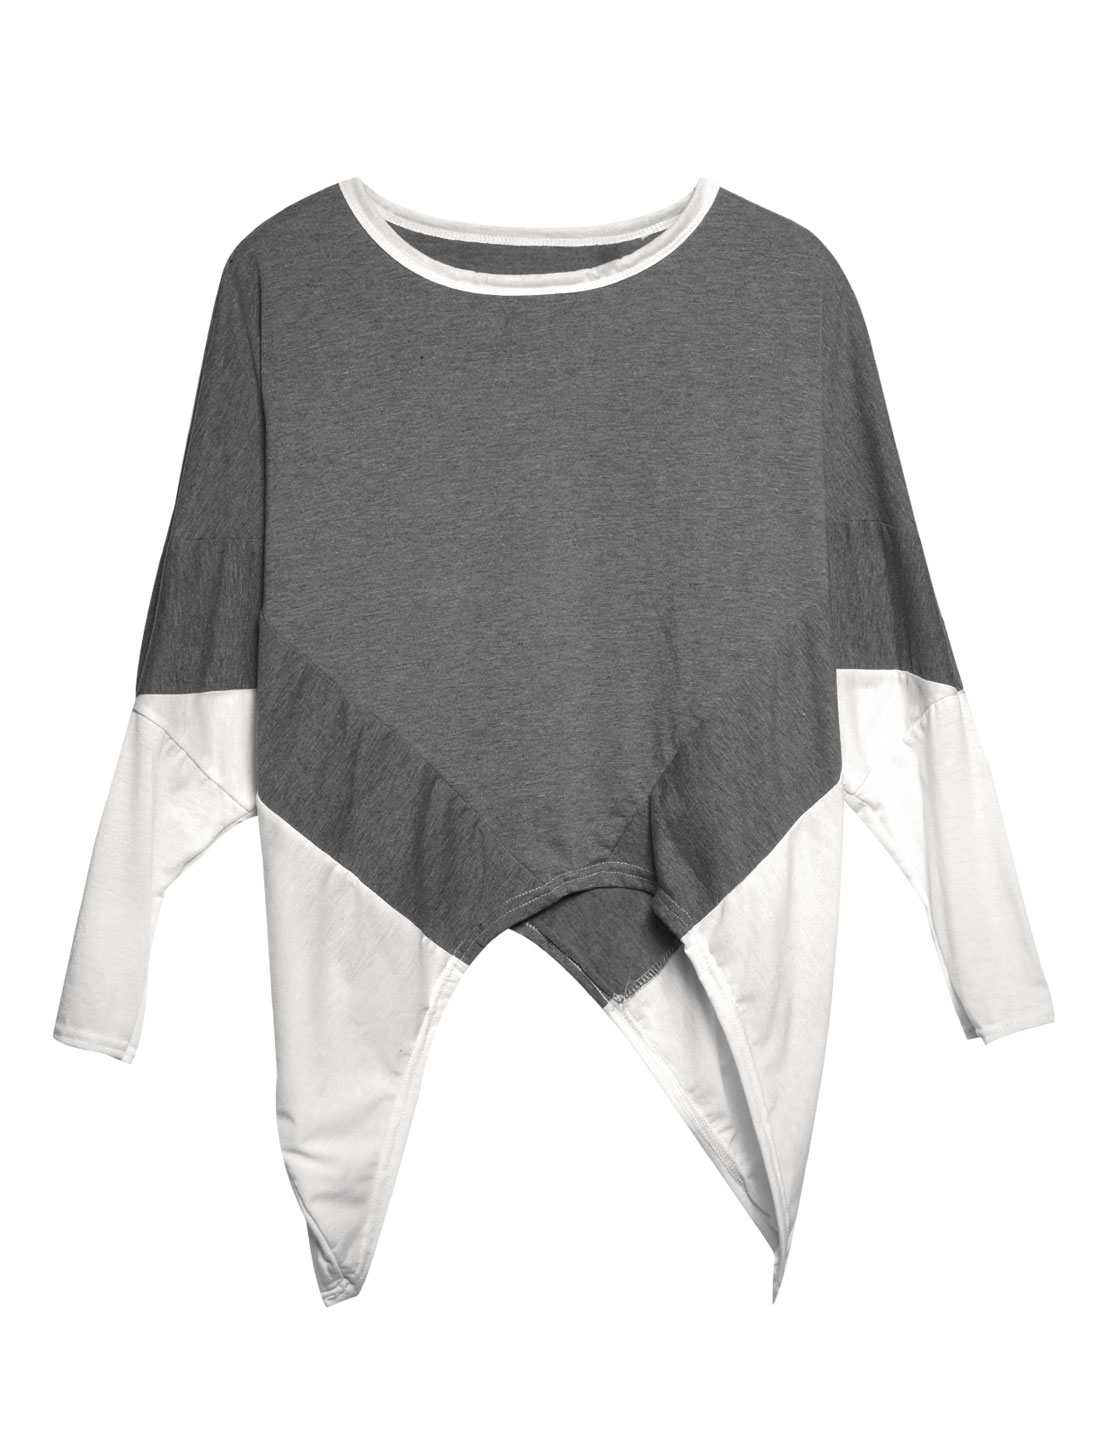 Lady Batwing Sleeve Color Block Fashion Casual Blouse Dark Gray White XS